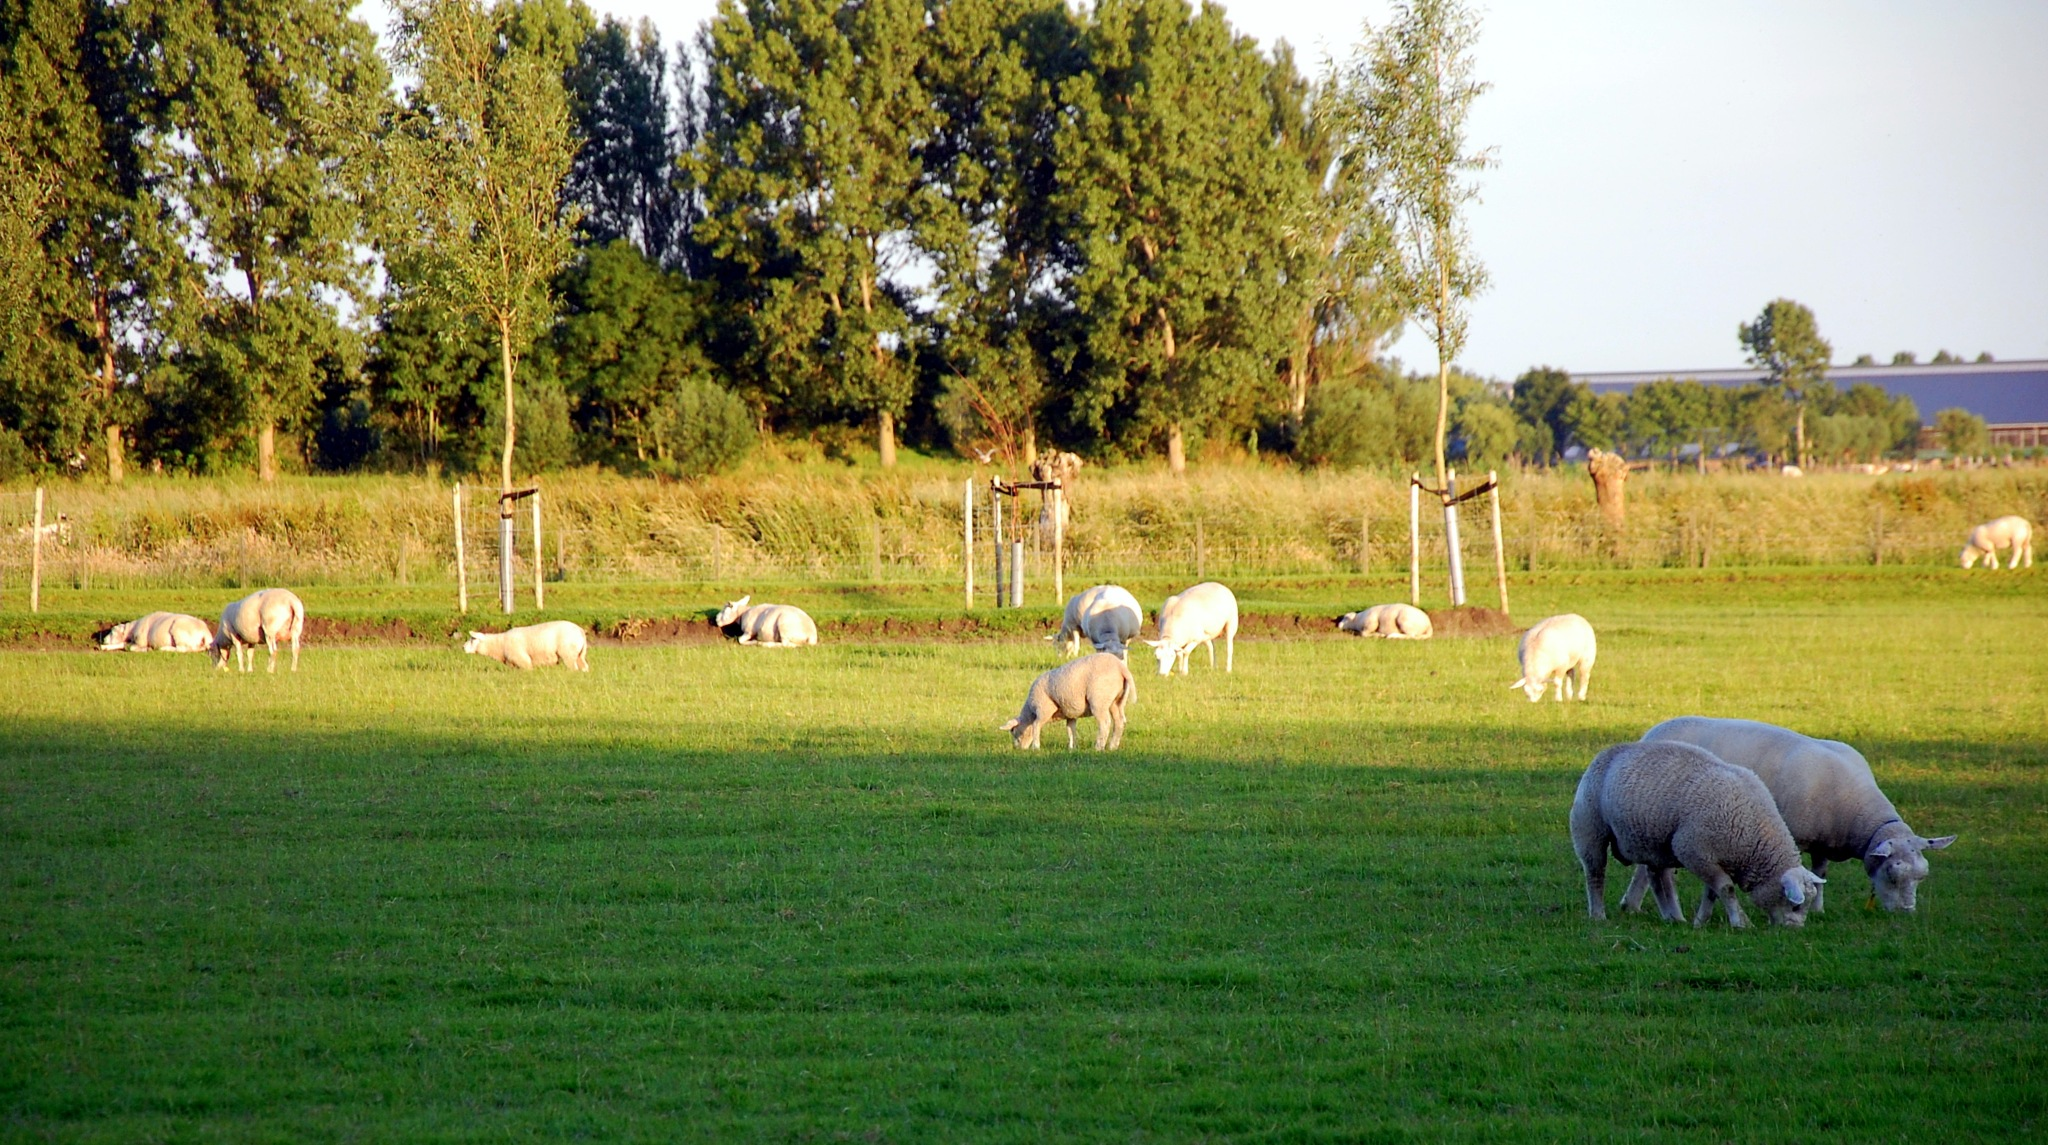 Sheeps In Light And Shade by goga.dt